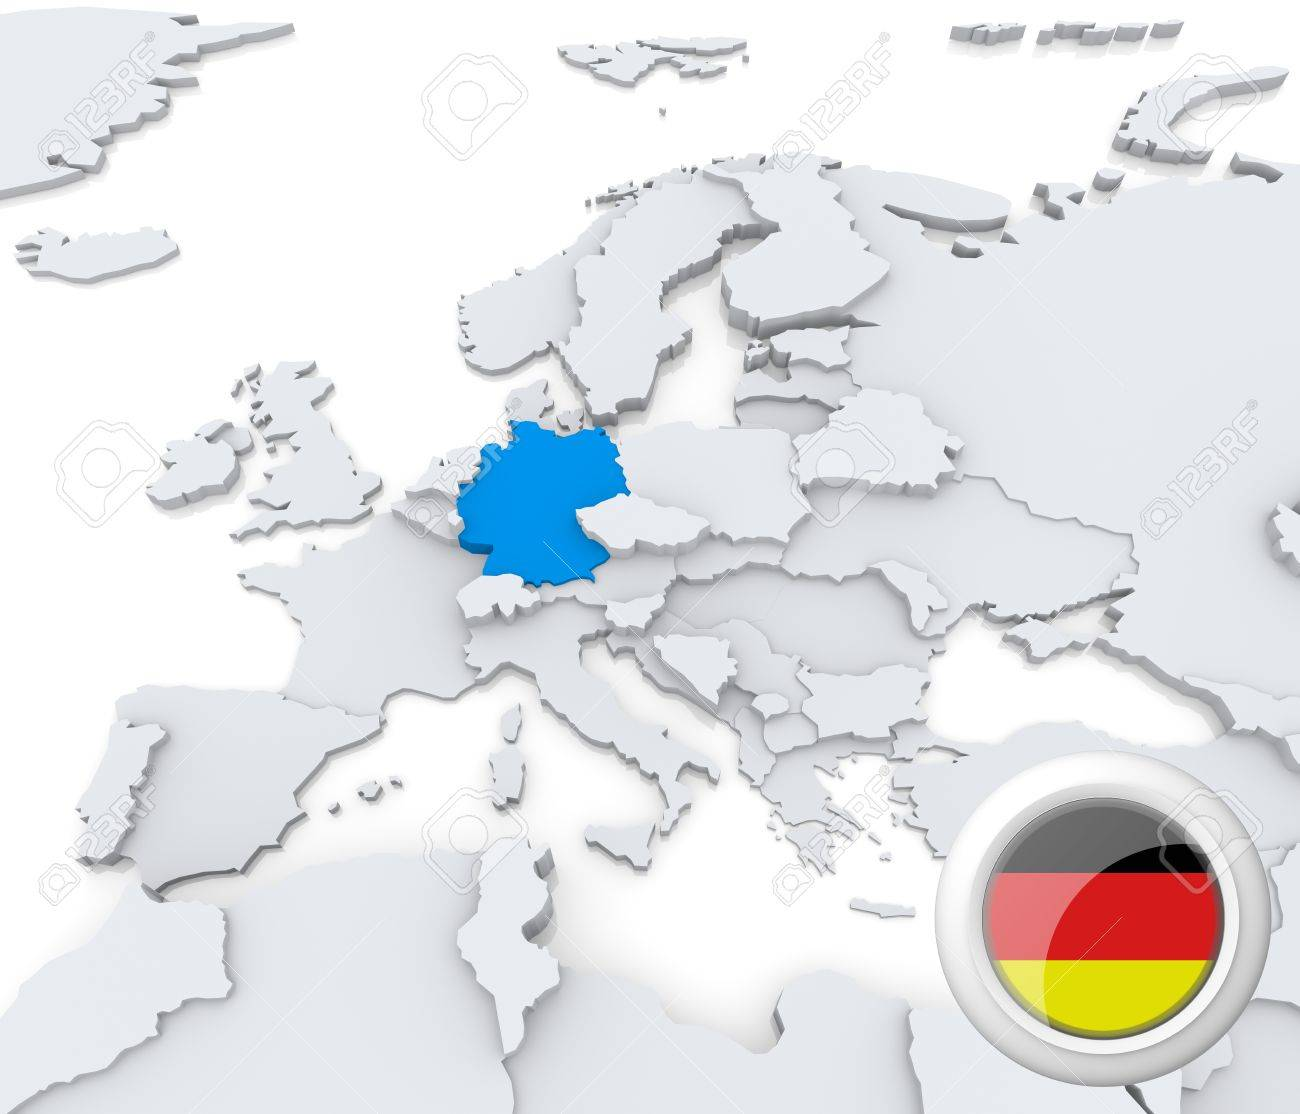 Highlighted Germany On Map Of Europe With National Flag – Germany in Europe Map